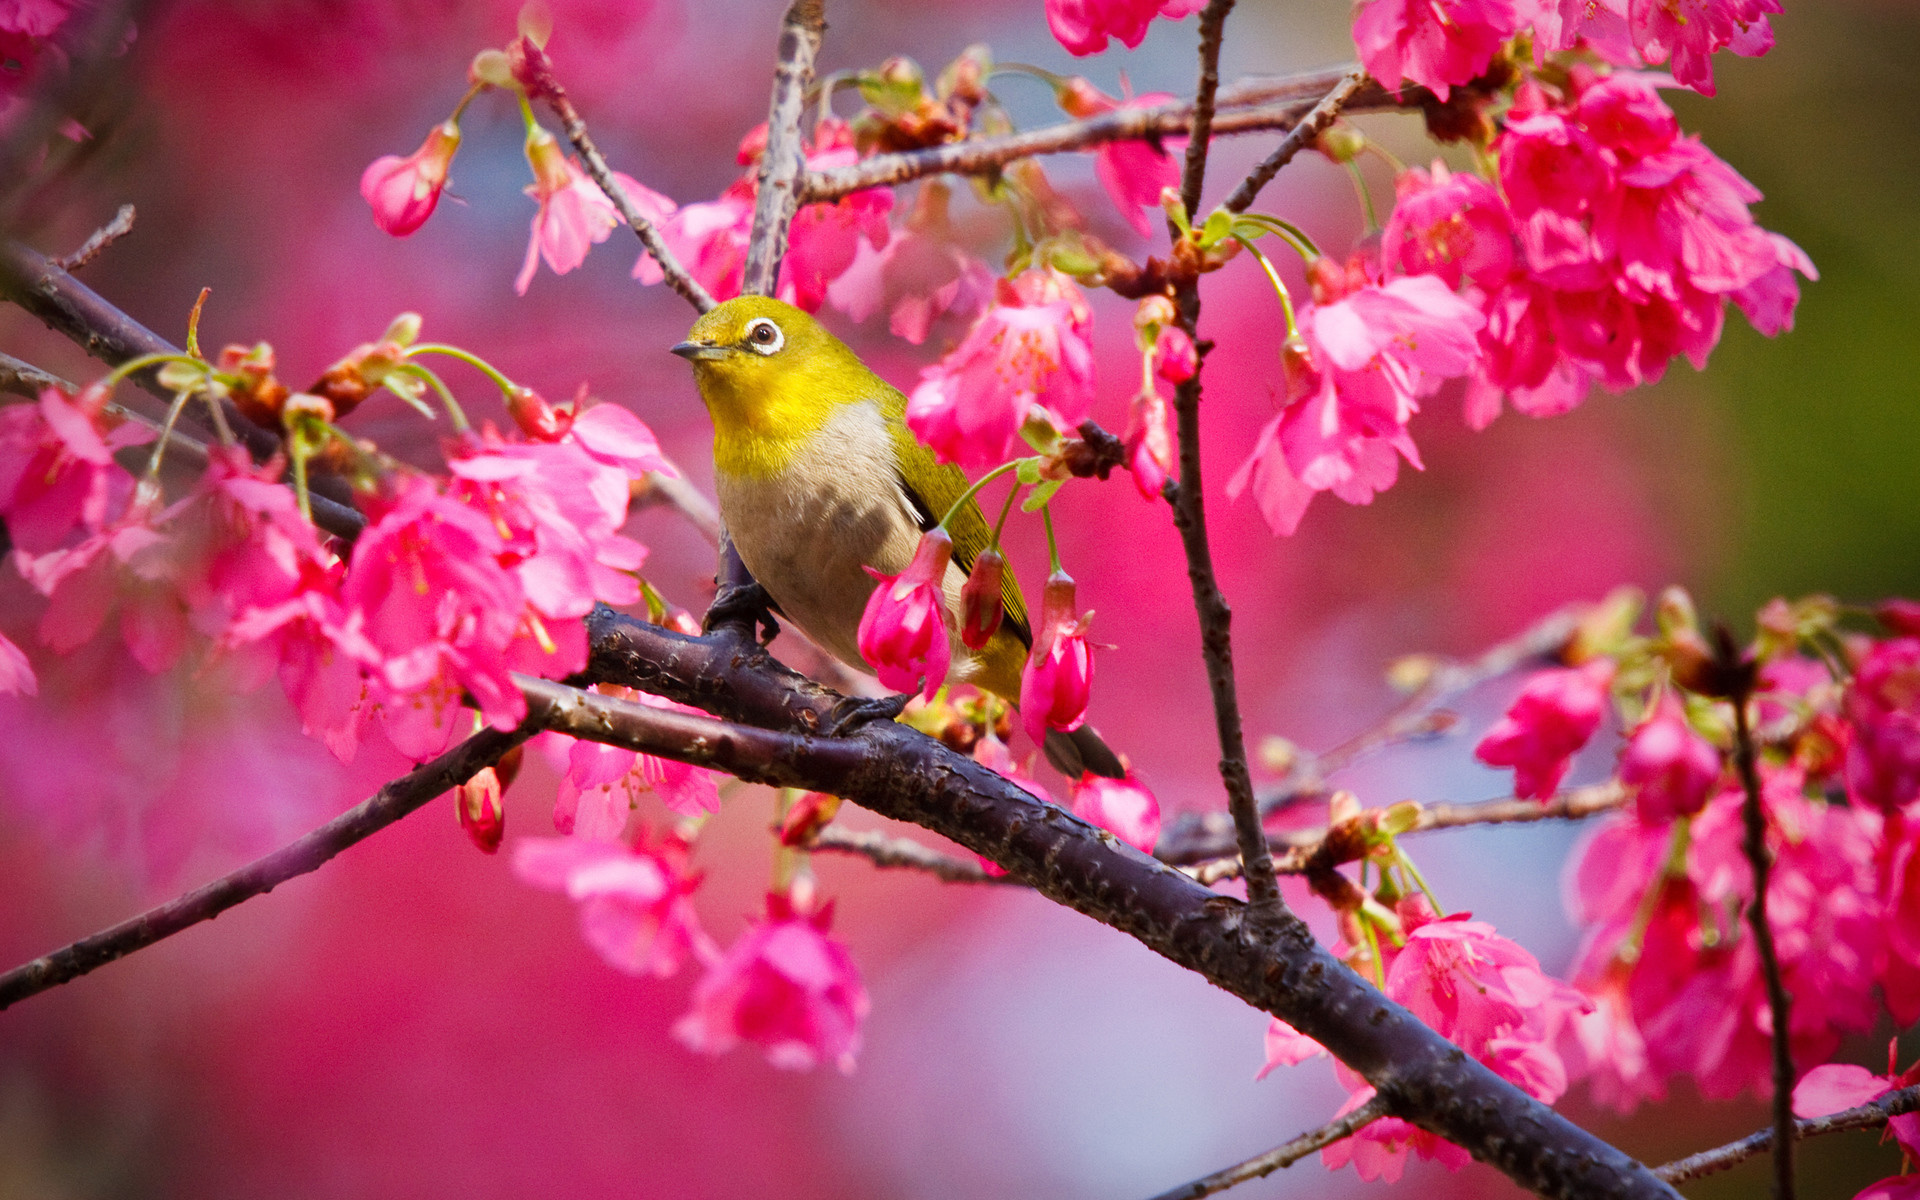 1920x1200 Animals birds nature trees flowers blossoms colors pink wallpaper |   | 23220 | WallpaperUP